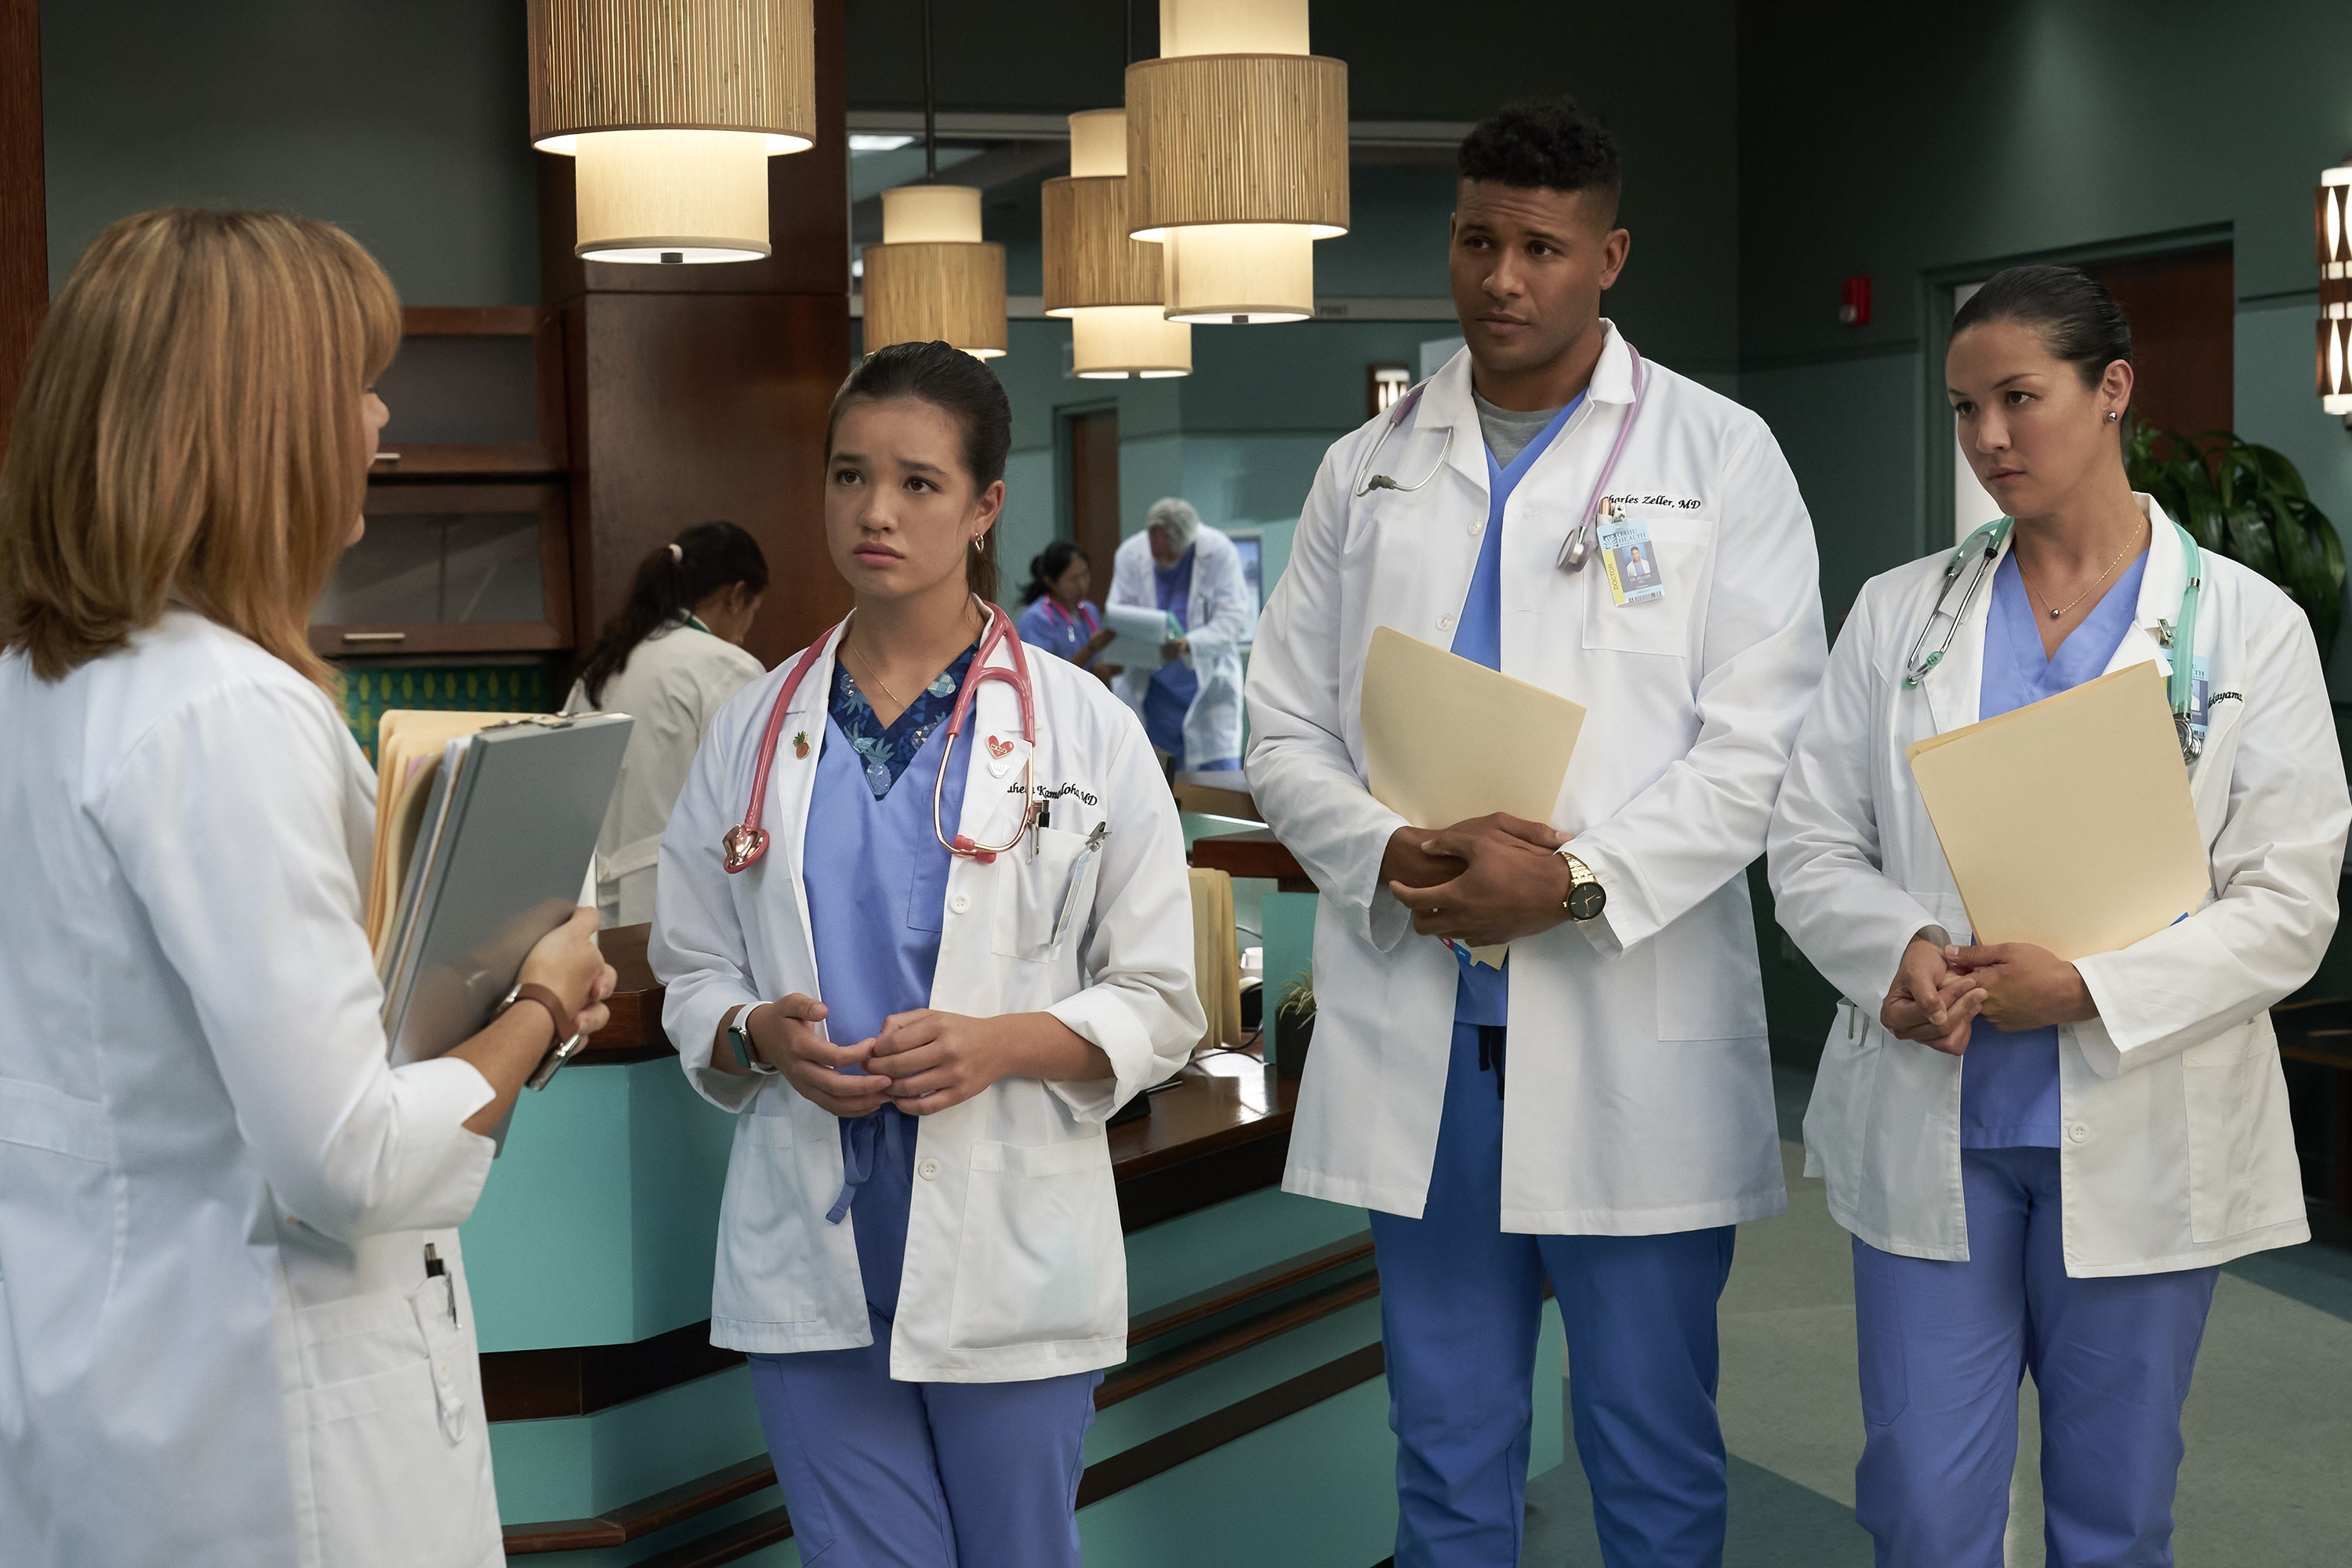 """DOOGIE KAMEALOHA, M.D. - """"Love Is a Mystery"""" - Lahela tackles two mysteries: the root cause of a tourist's sudden paralysis and Walter's feelings. (Disney/Karen Neal) PEYTON ELIZABETH LEE, JEFFREY BOWYER- CHAPMAN, MAPUANA MAKIA"""